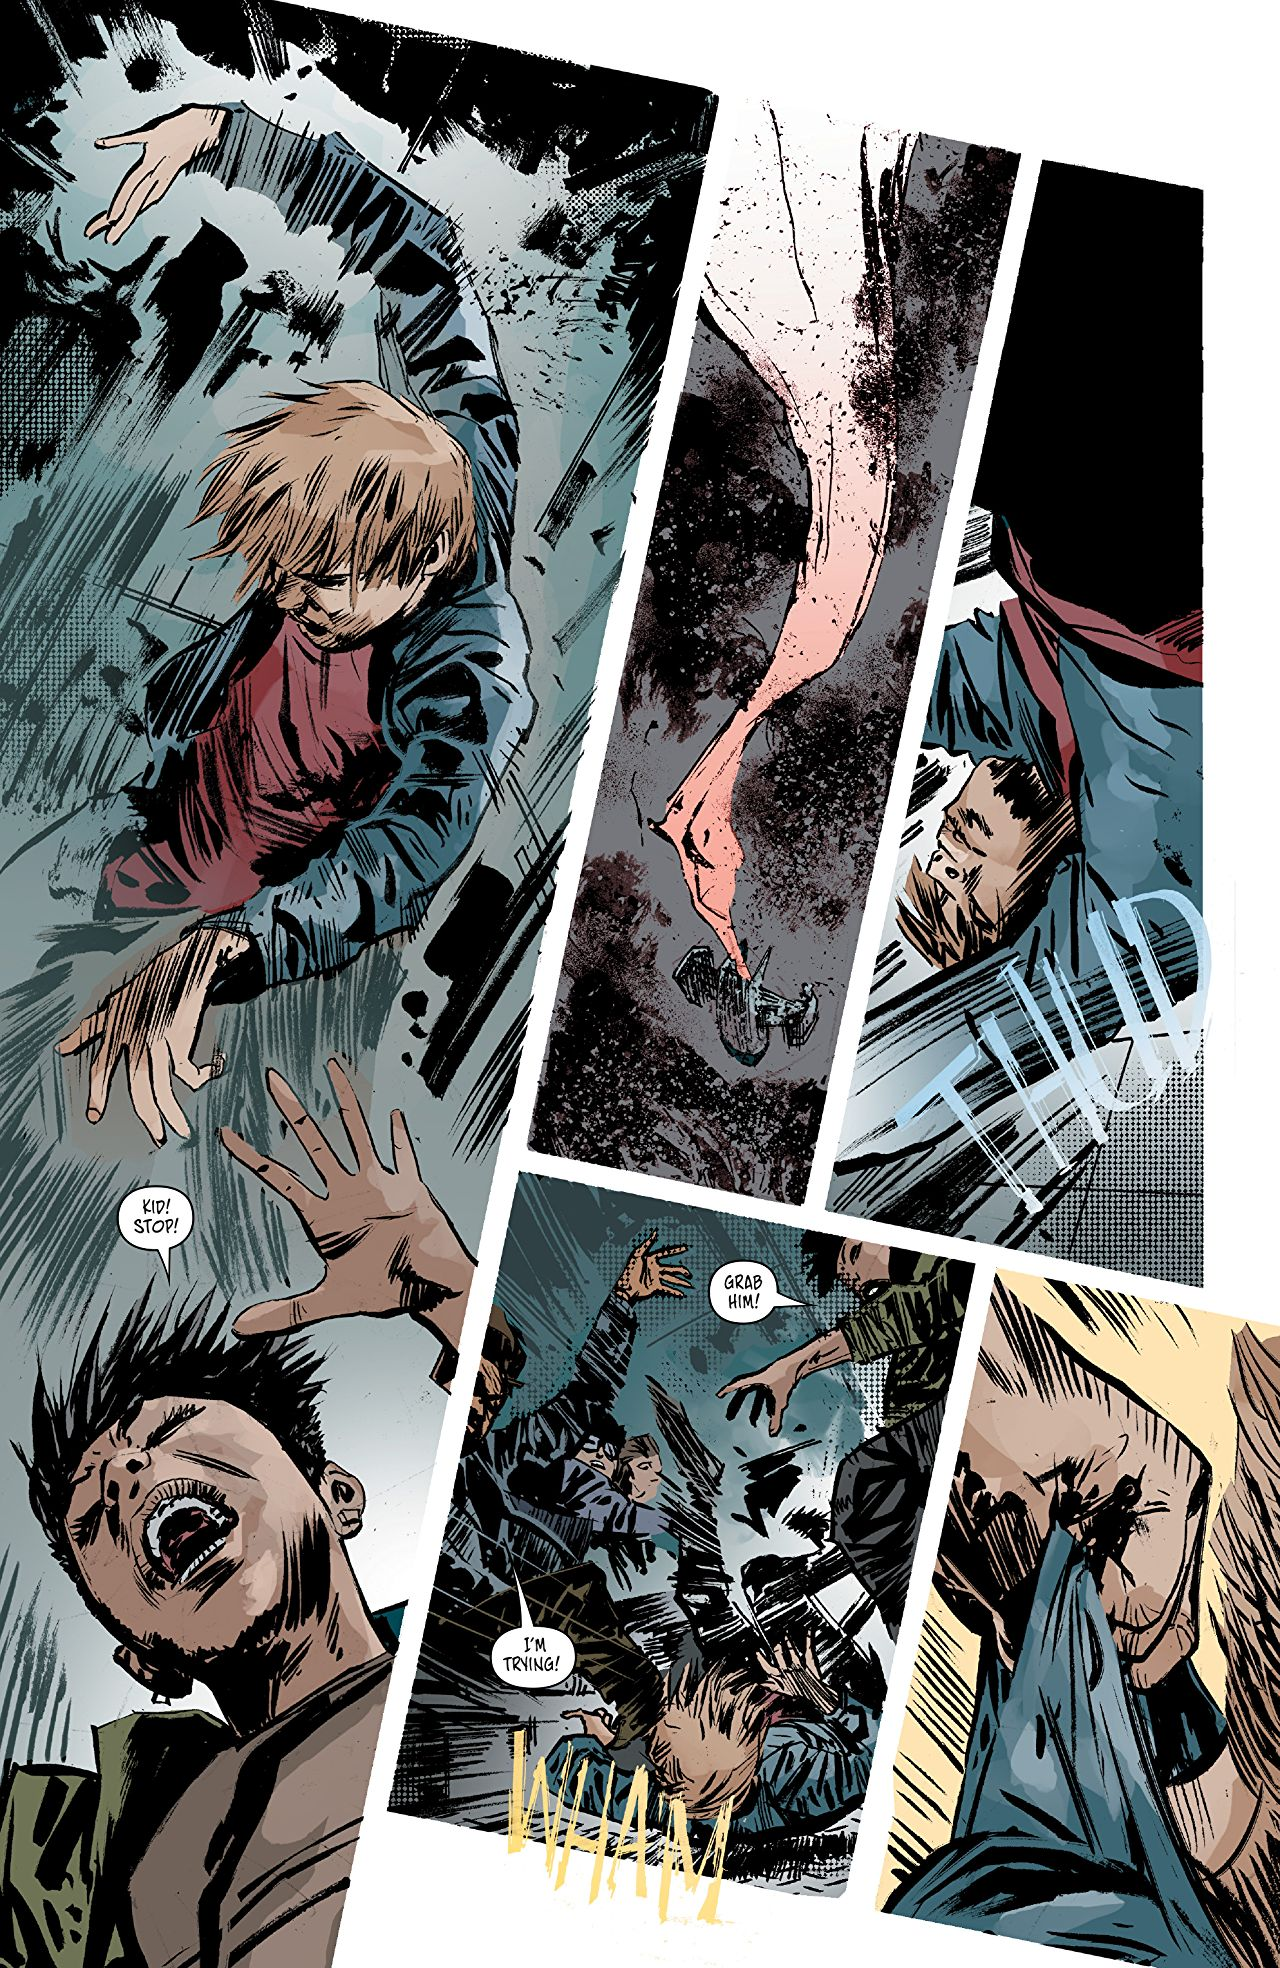 Aliens: Dust to Dust #2 art by Gabriel Hardman and Rain Beredo